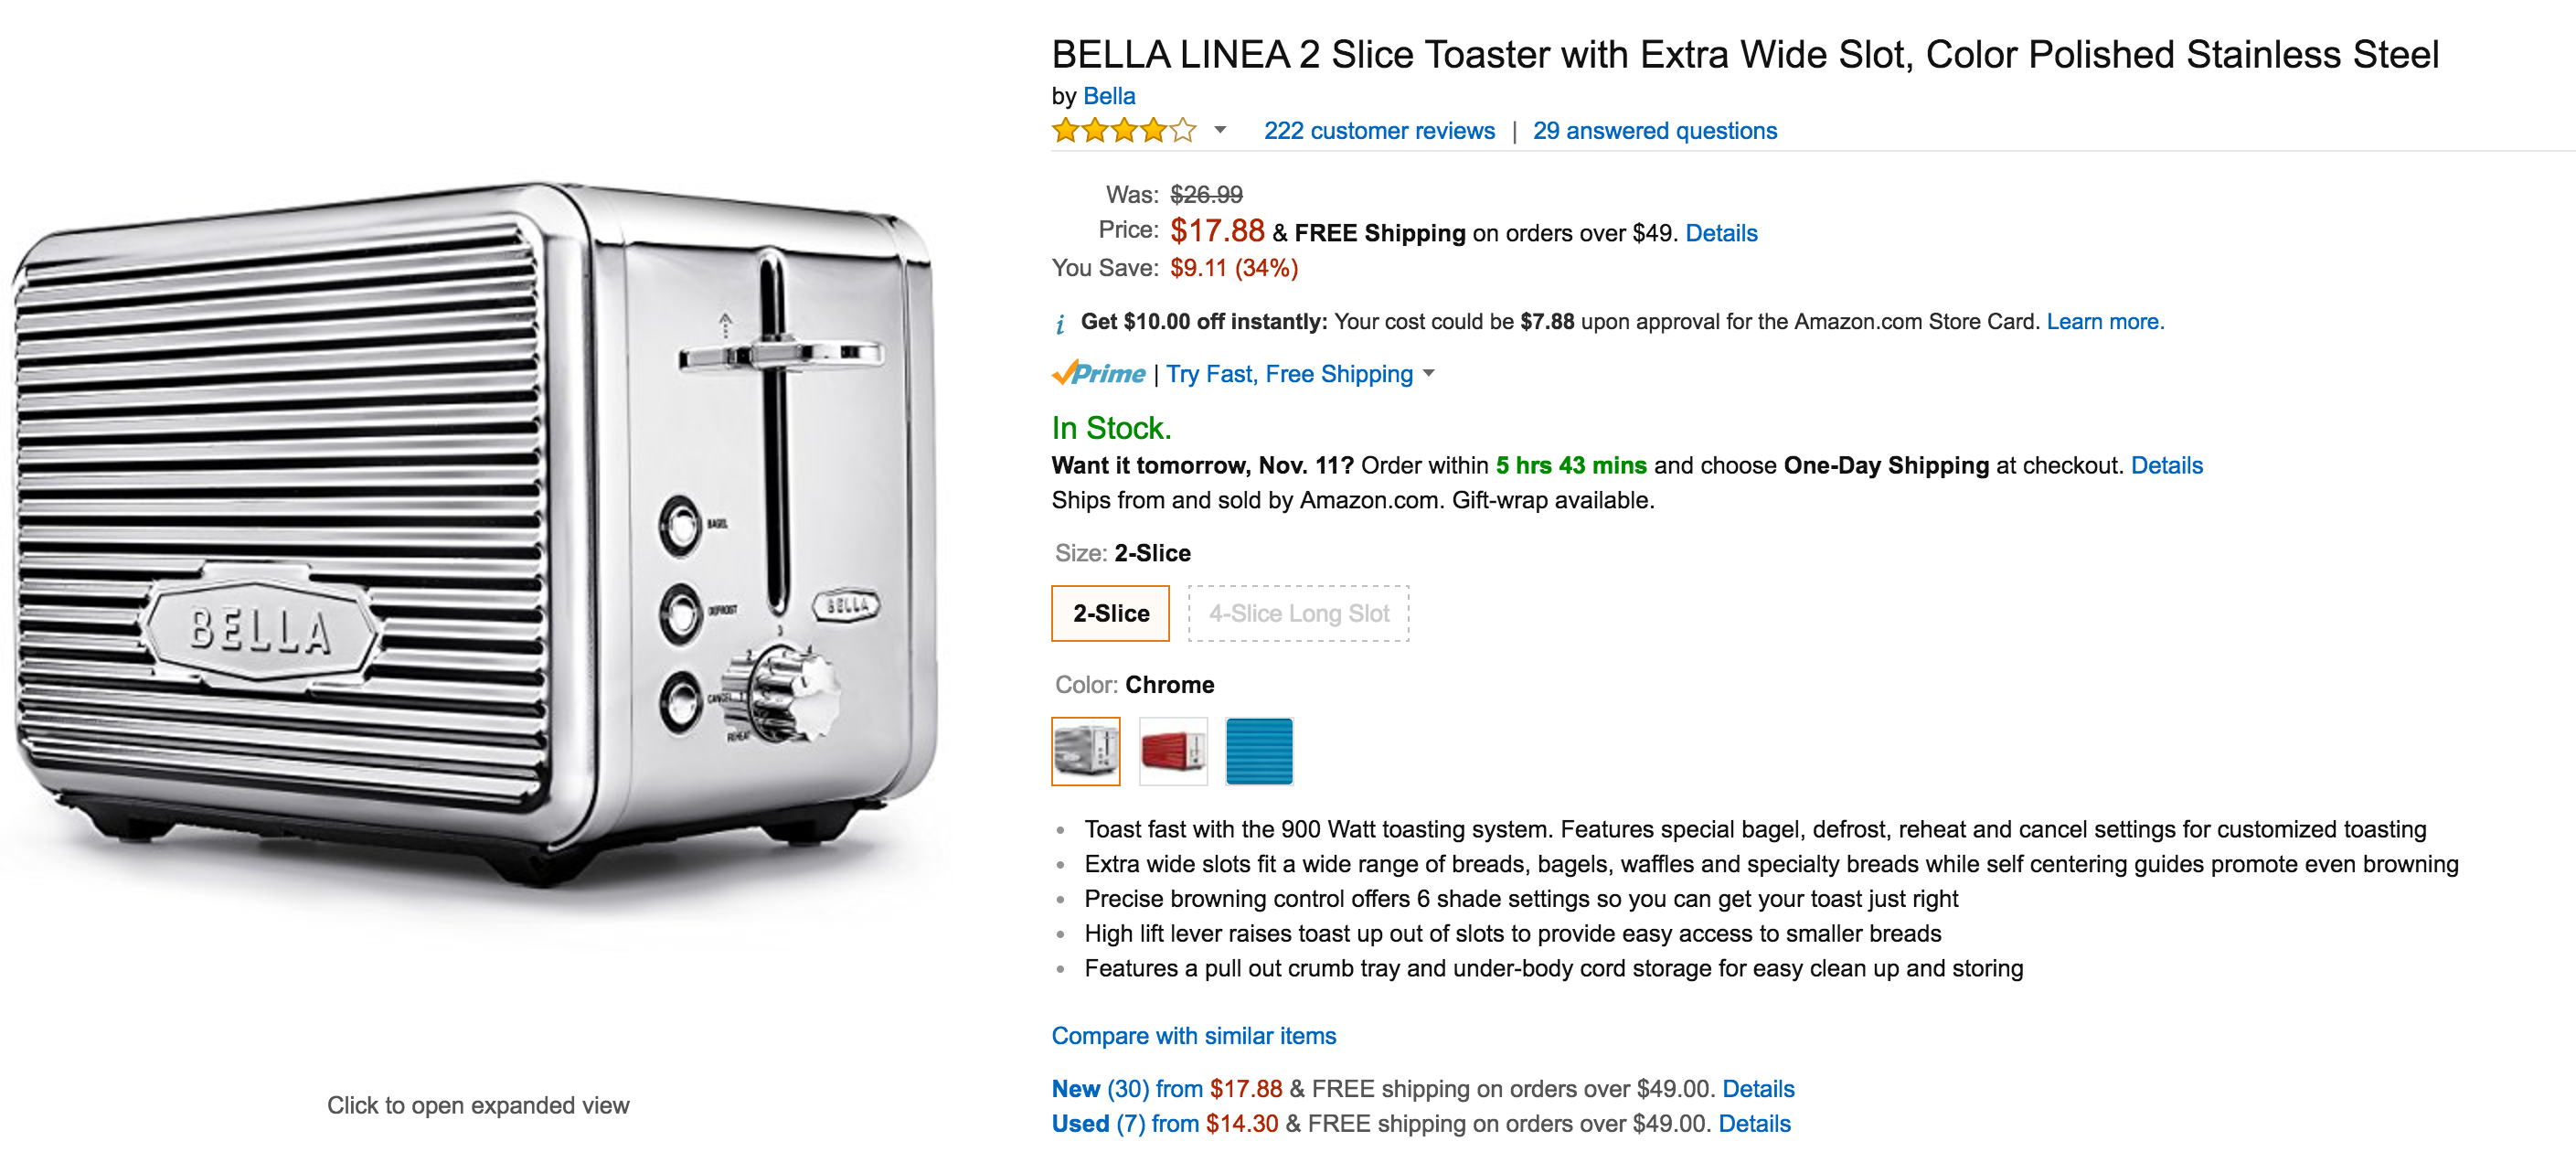 bella-linea-2-slice-toaster-with-extra-wide-slot-in-polished-stainless-steel-3